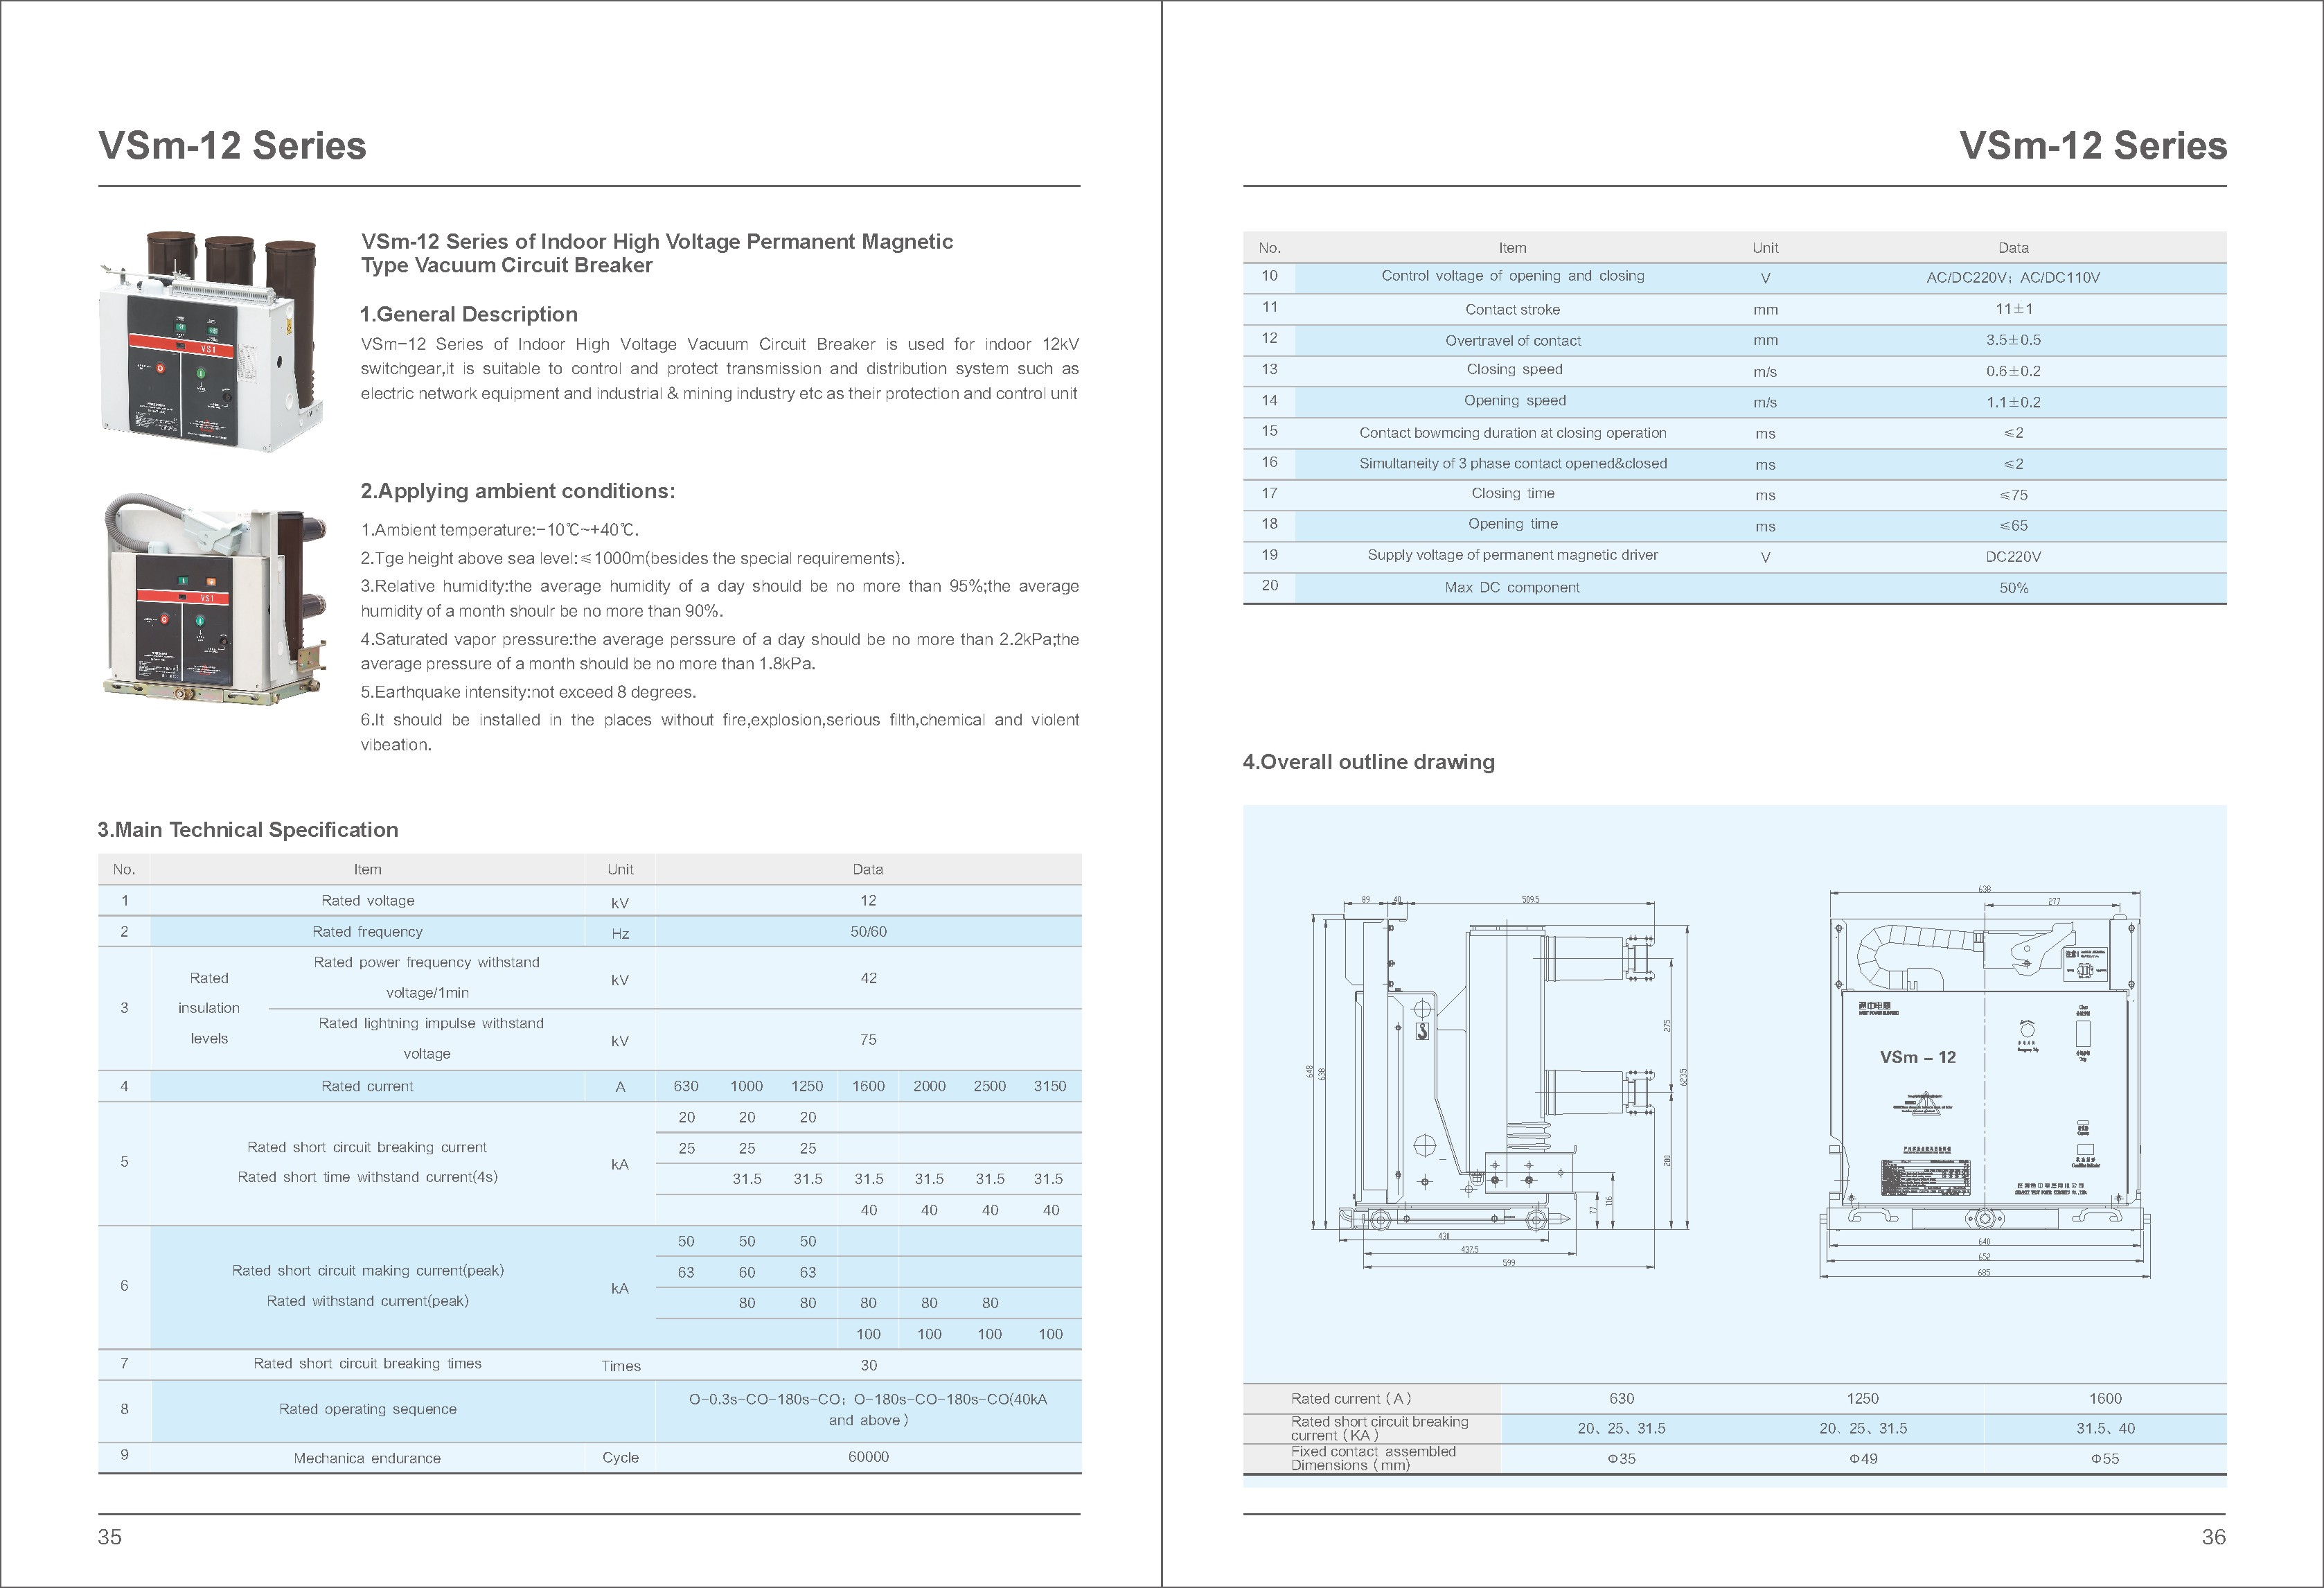 VSm-12/1600-31.5 Type VCB Technical specification